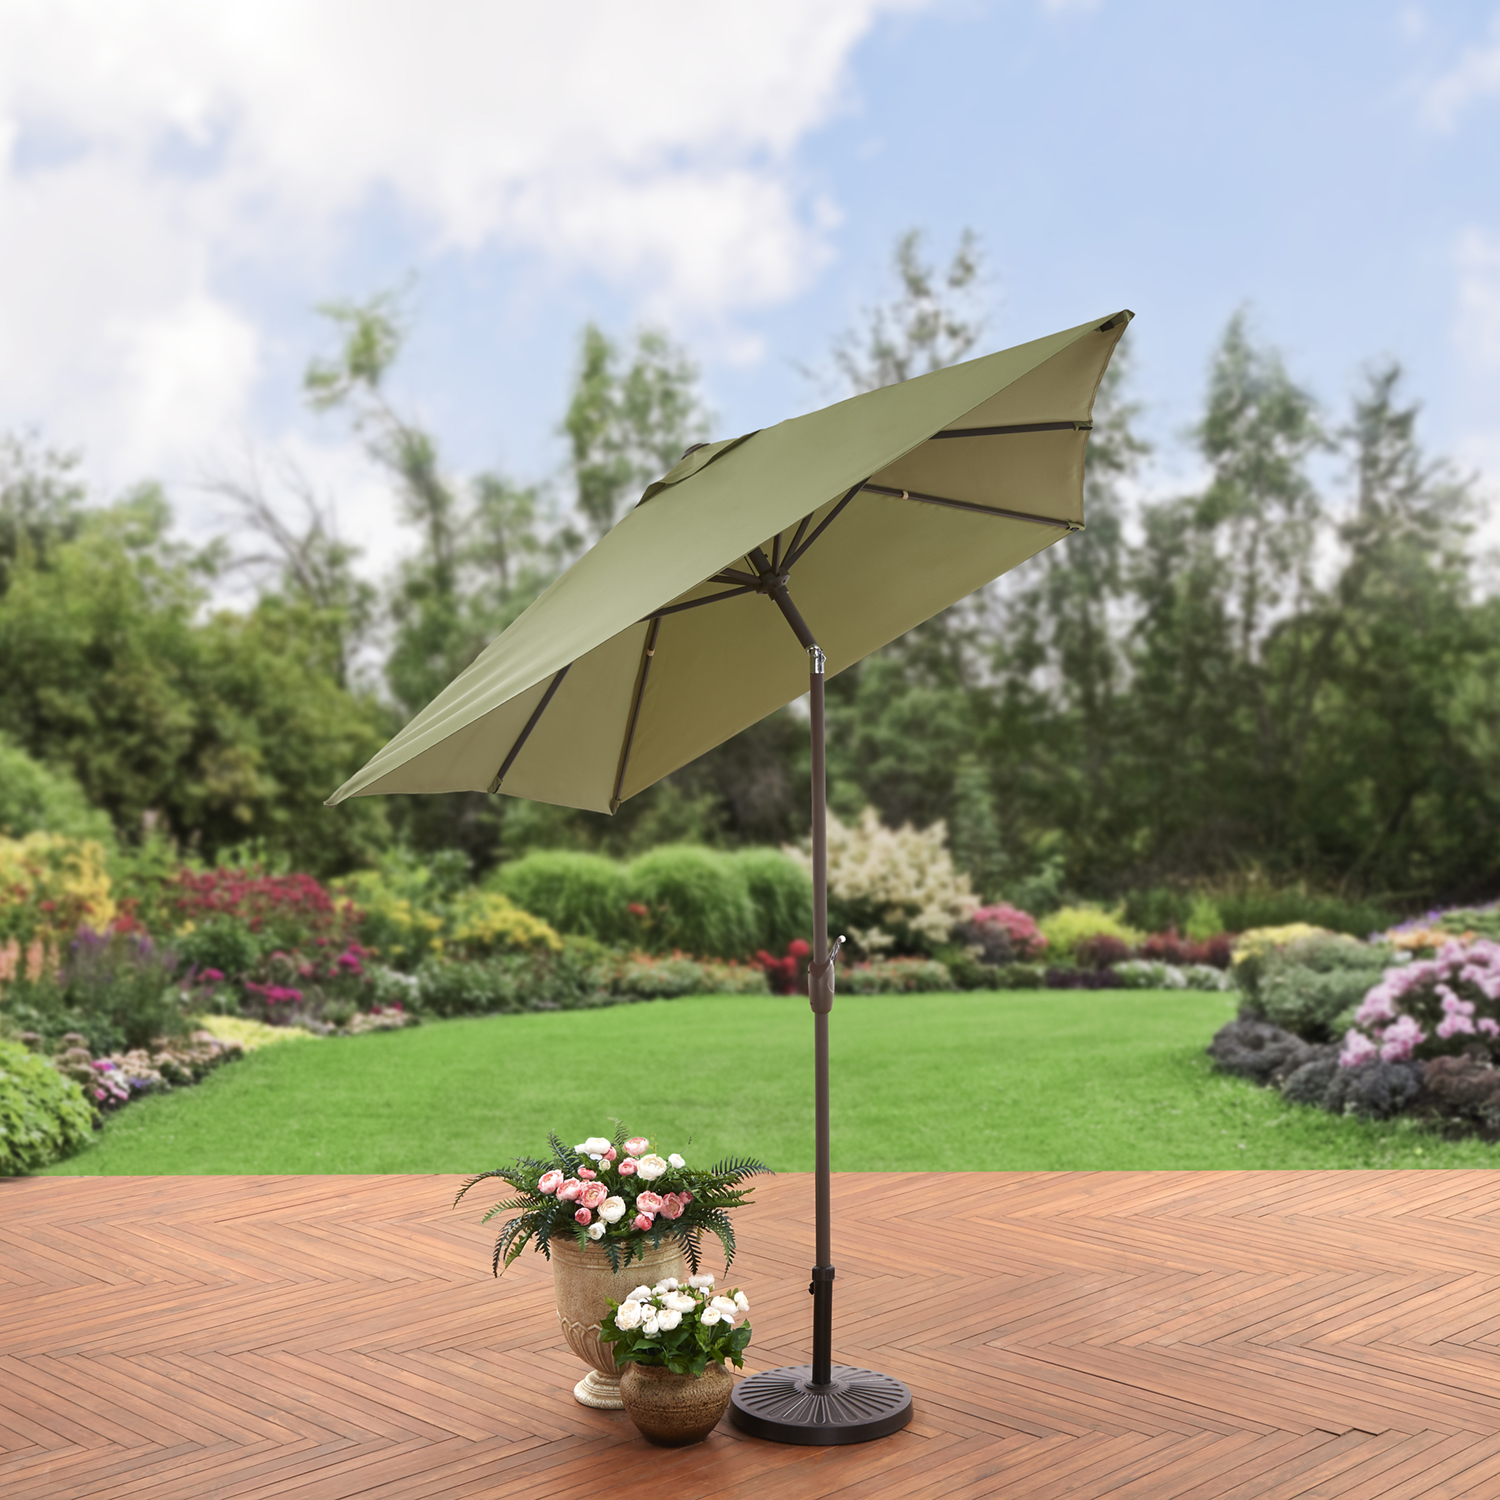 Better Homes and Gardens 6.2 x 9.6 ft. Rectangular Patio Umbrella